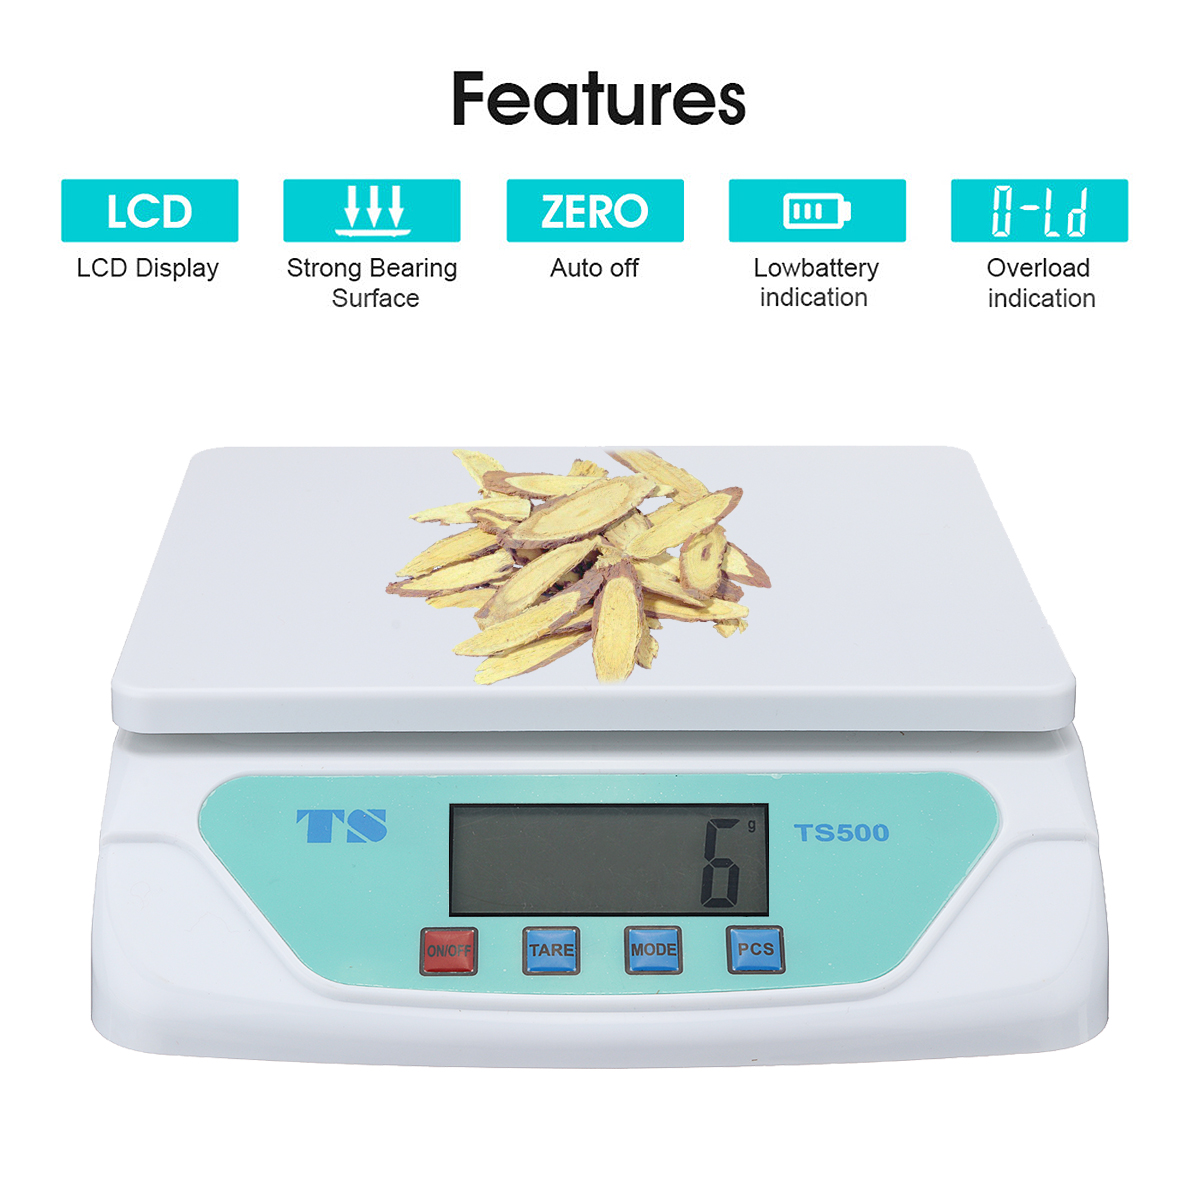 30kg / 1g Kitchen food electronic scales Weighing Grams Balance LCD Display Home Electronic Balance Weight scales universal 15kg 1g c1 kitchen scales lcd display accurate digital toughened glass electronic cooking food weighing precision ht917